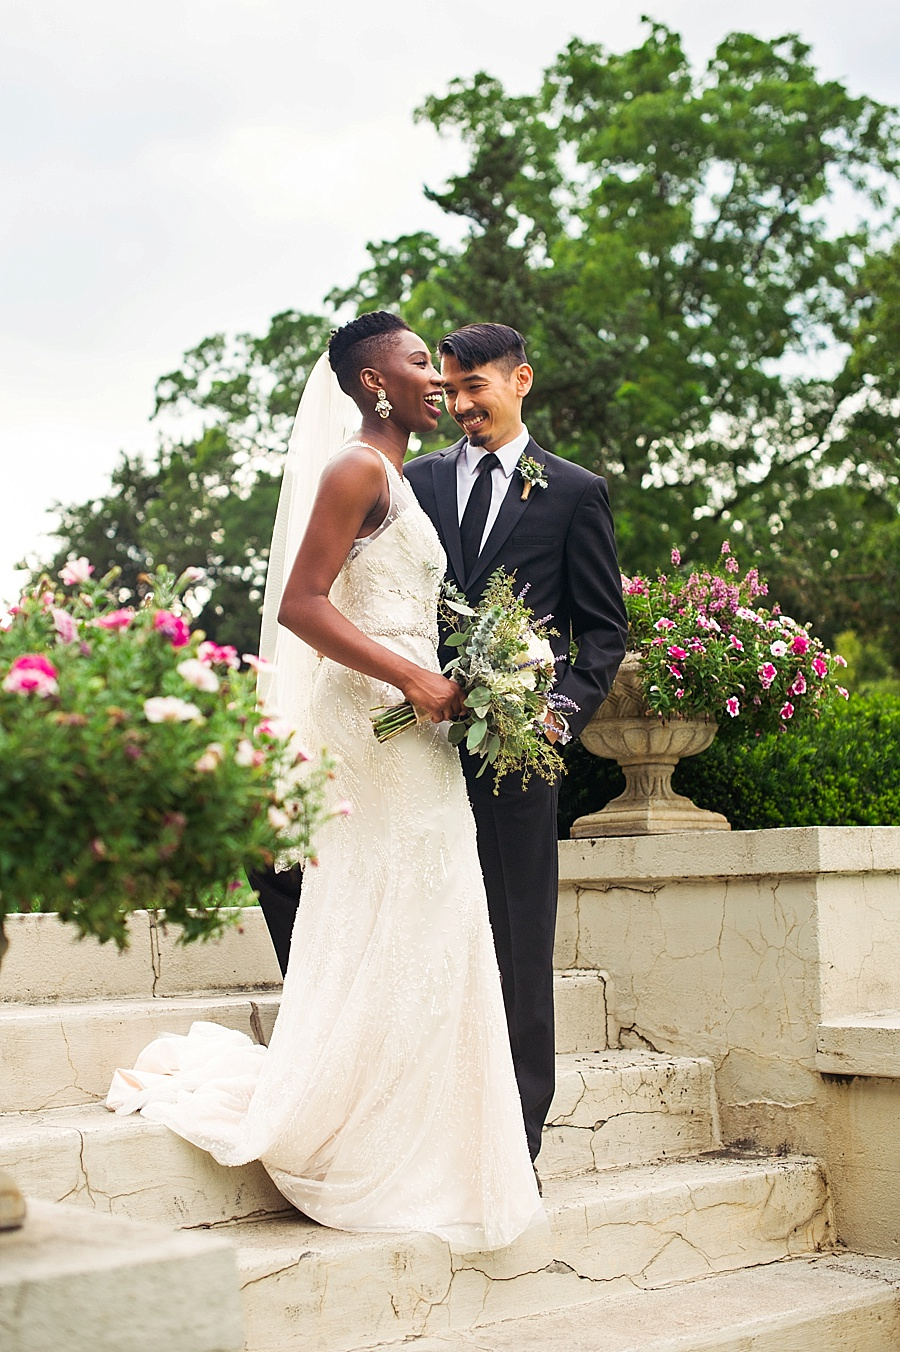 Severin-photography-multicultural-wedding-photographer-chicago-5817.jpg